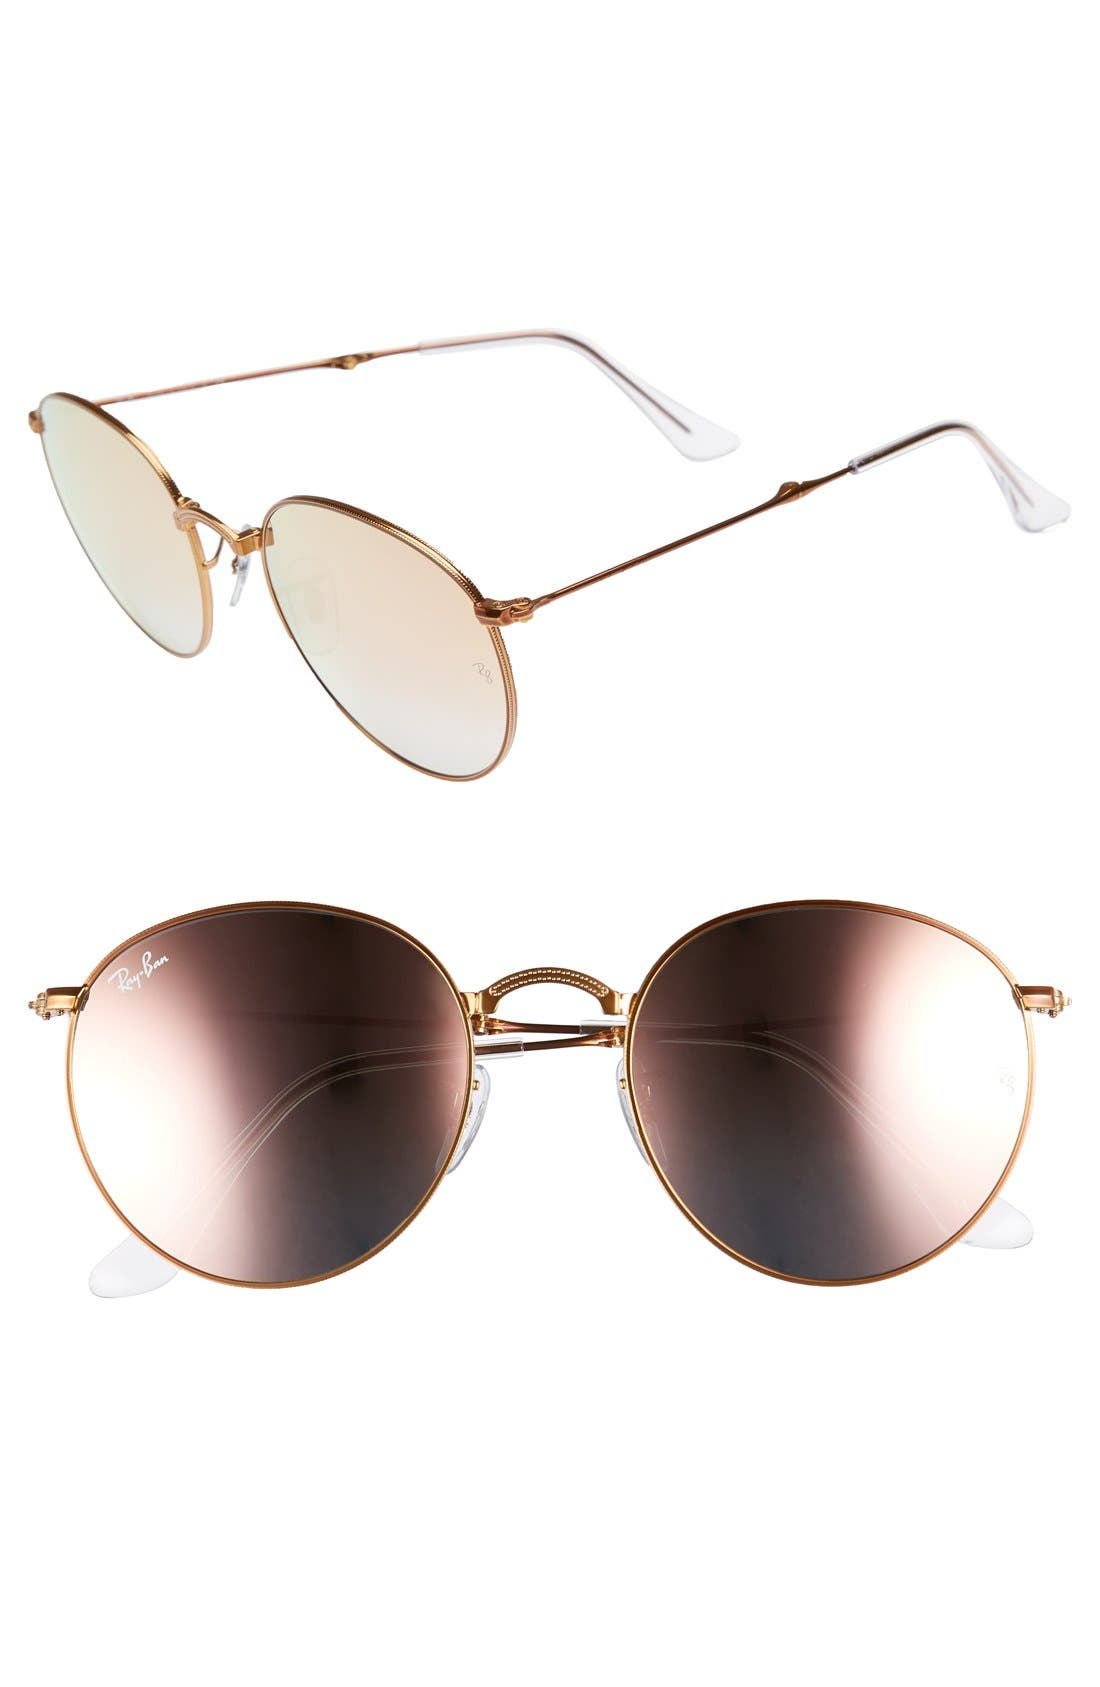 Alternate Image 1 Selected - Ray-Ban Icons 53mm Folding Round Sunglasses